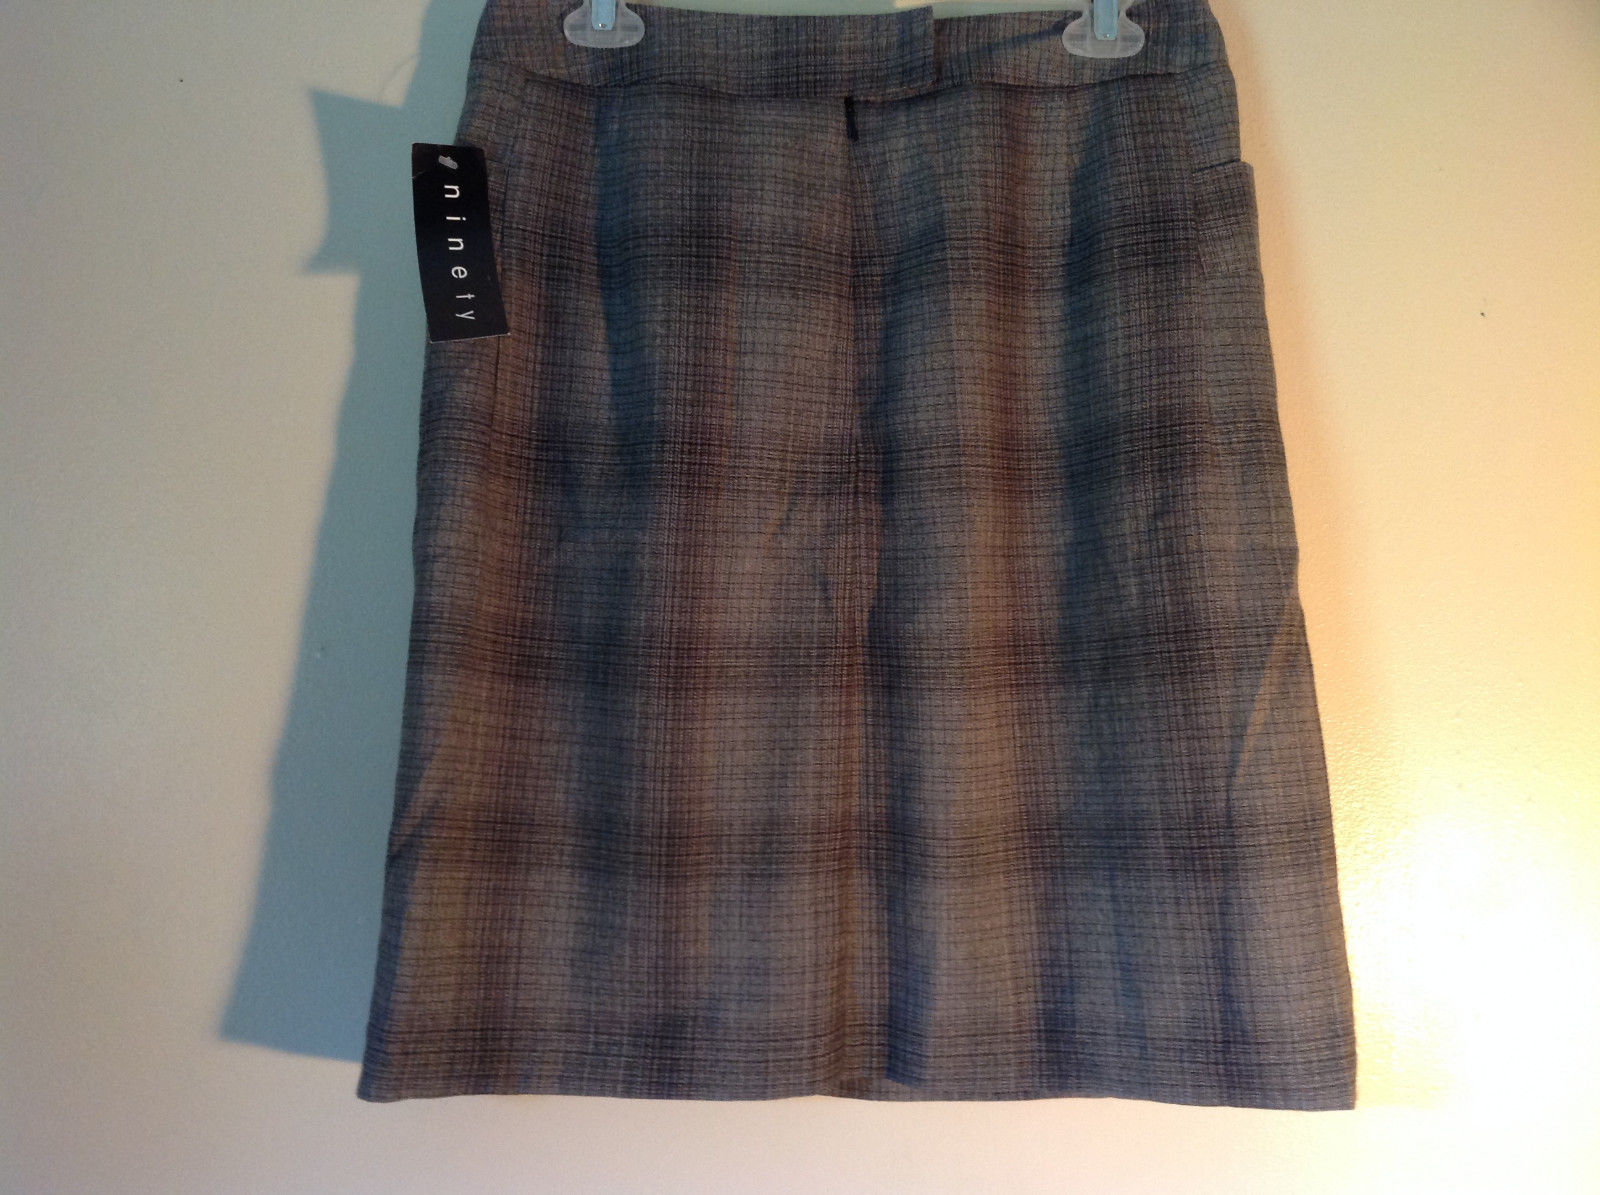 Size 8 Black and Gray Plaid Lined Skirt by Ninety Button Zipper Clasp Closure